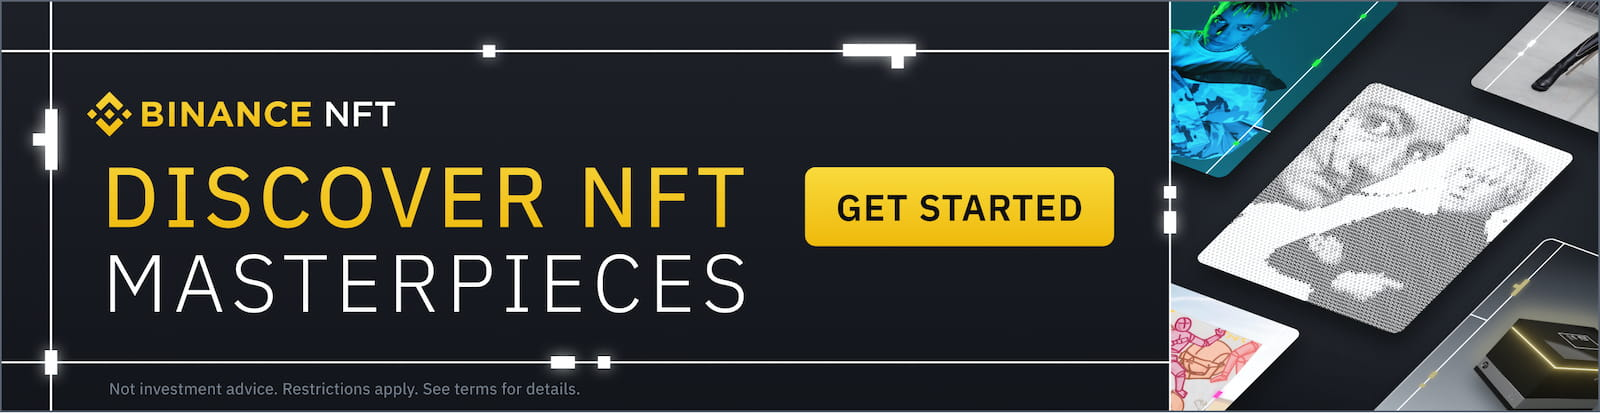 Binance NFT Milestones: One Month After Launch And Over 150,000 NFTs Sold In MinutesCryptocurrency Trading Signals, Strategies & Templates | DexStrats